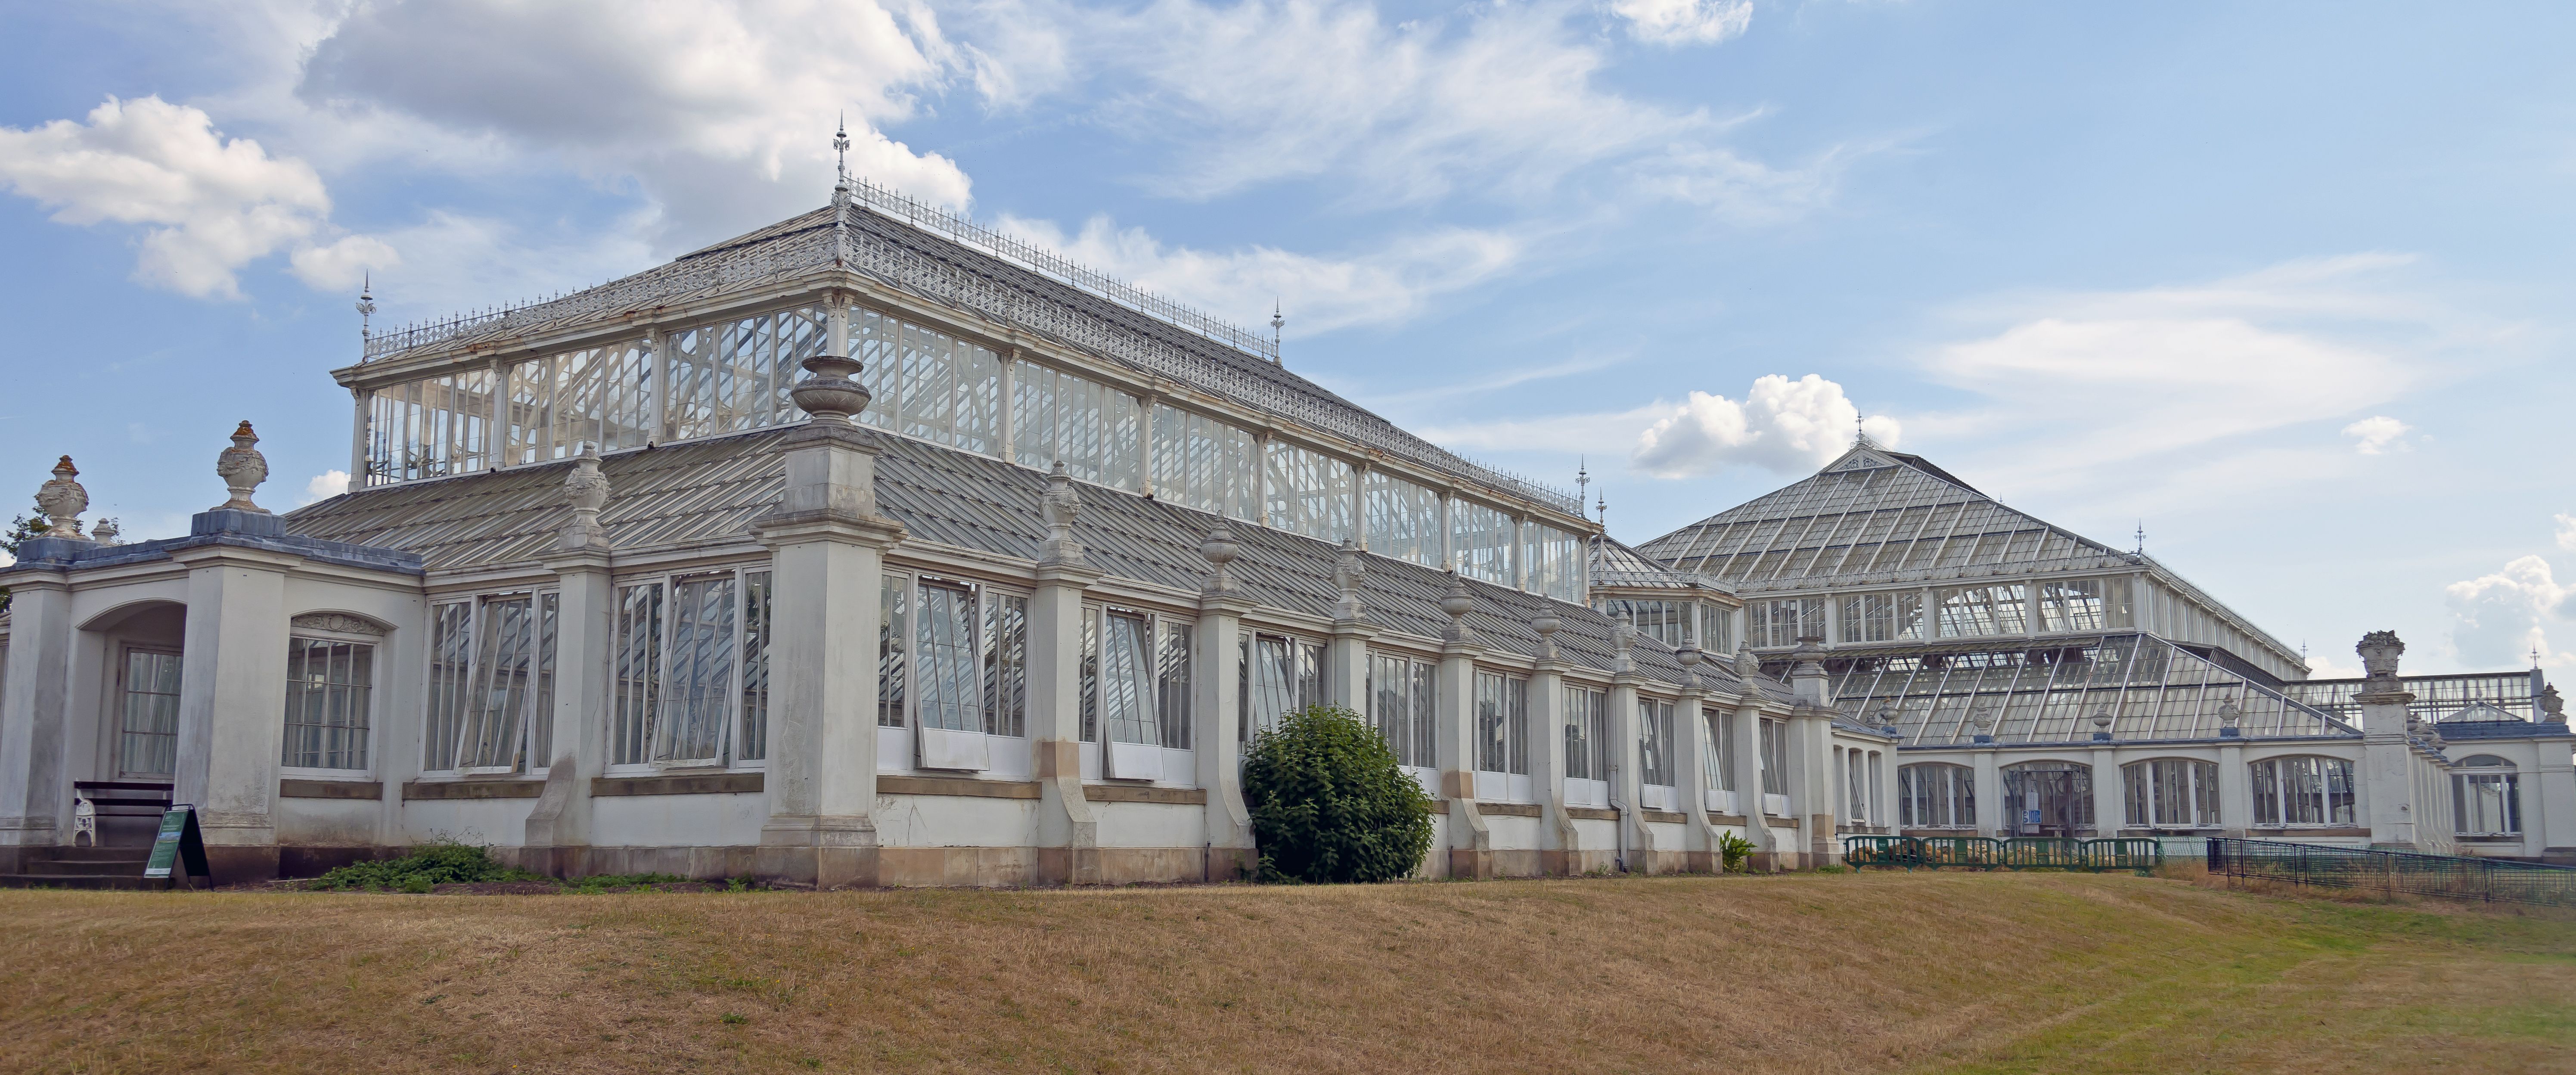 File Kew Gardens Temperate House Side View Jpg